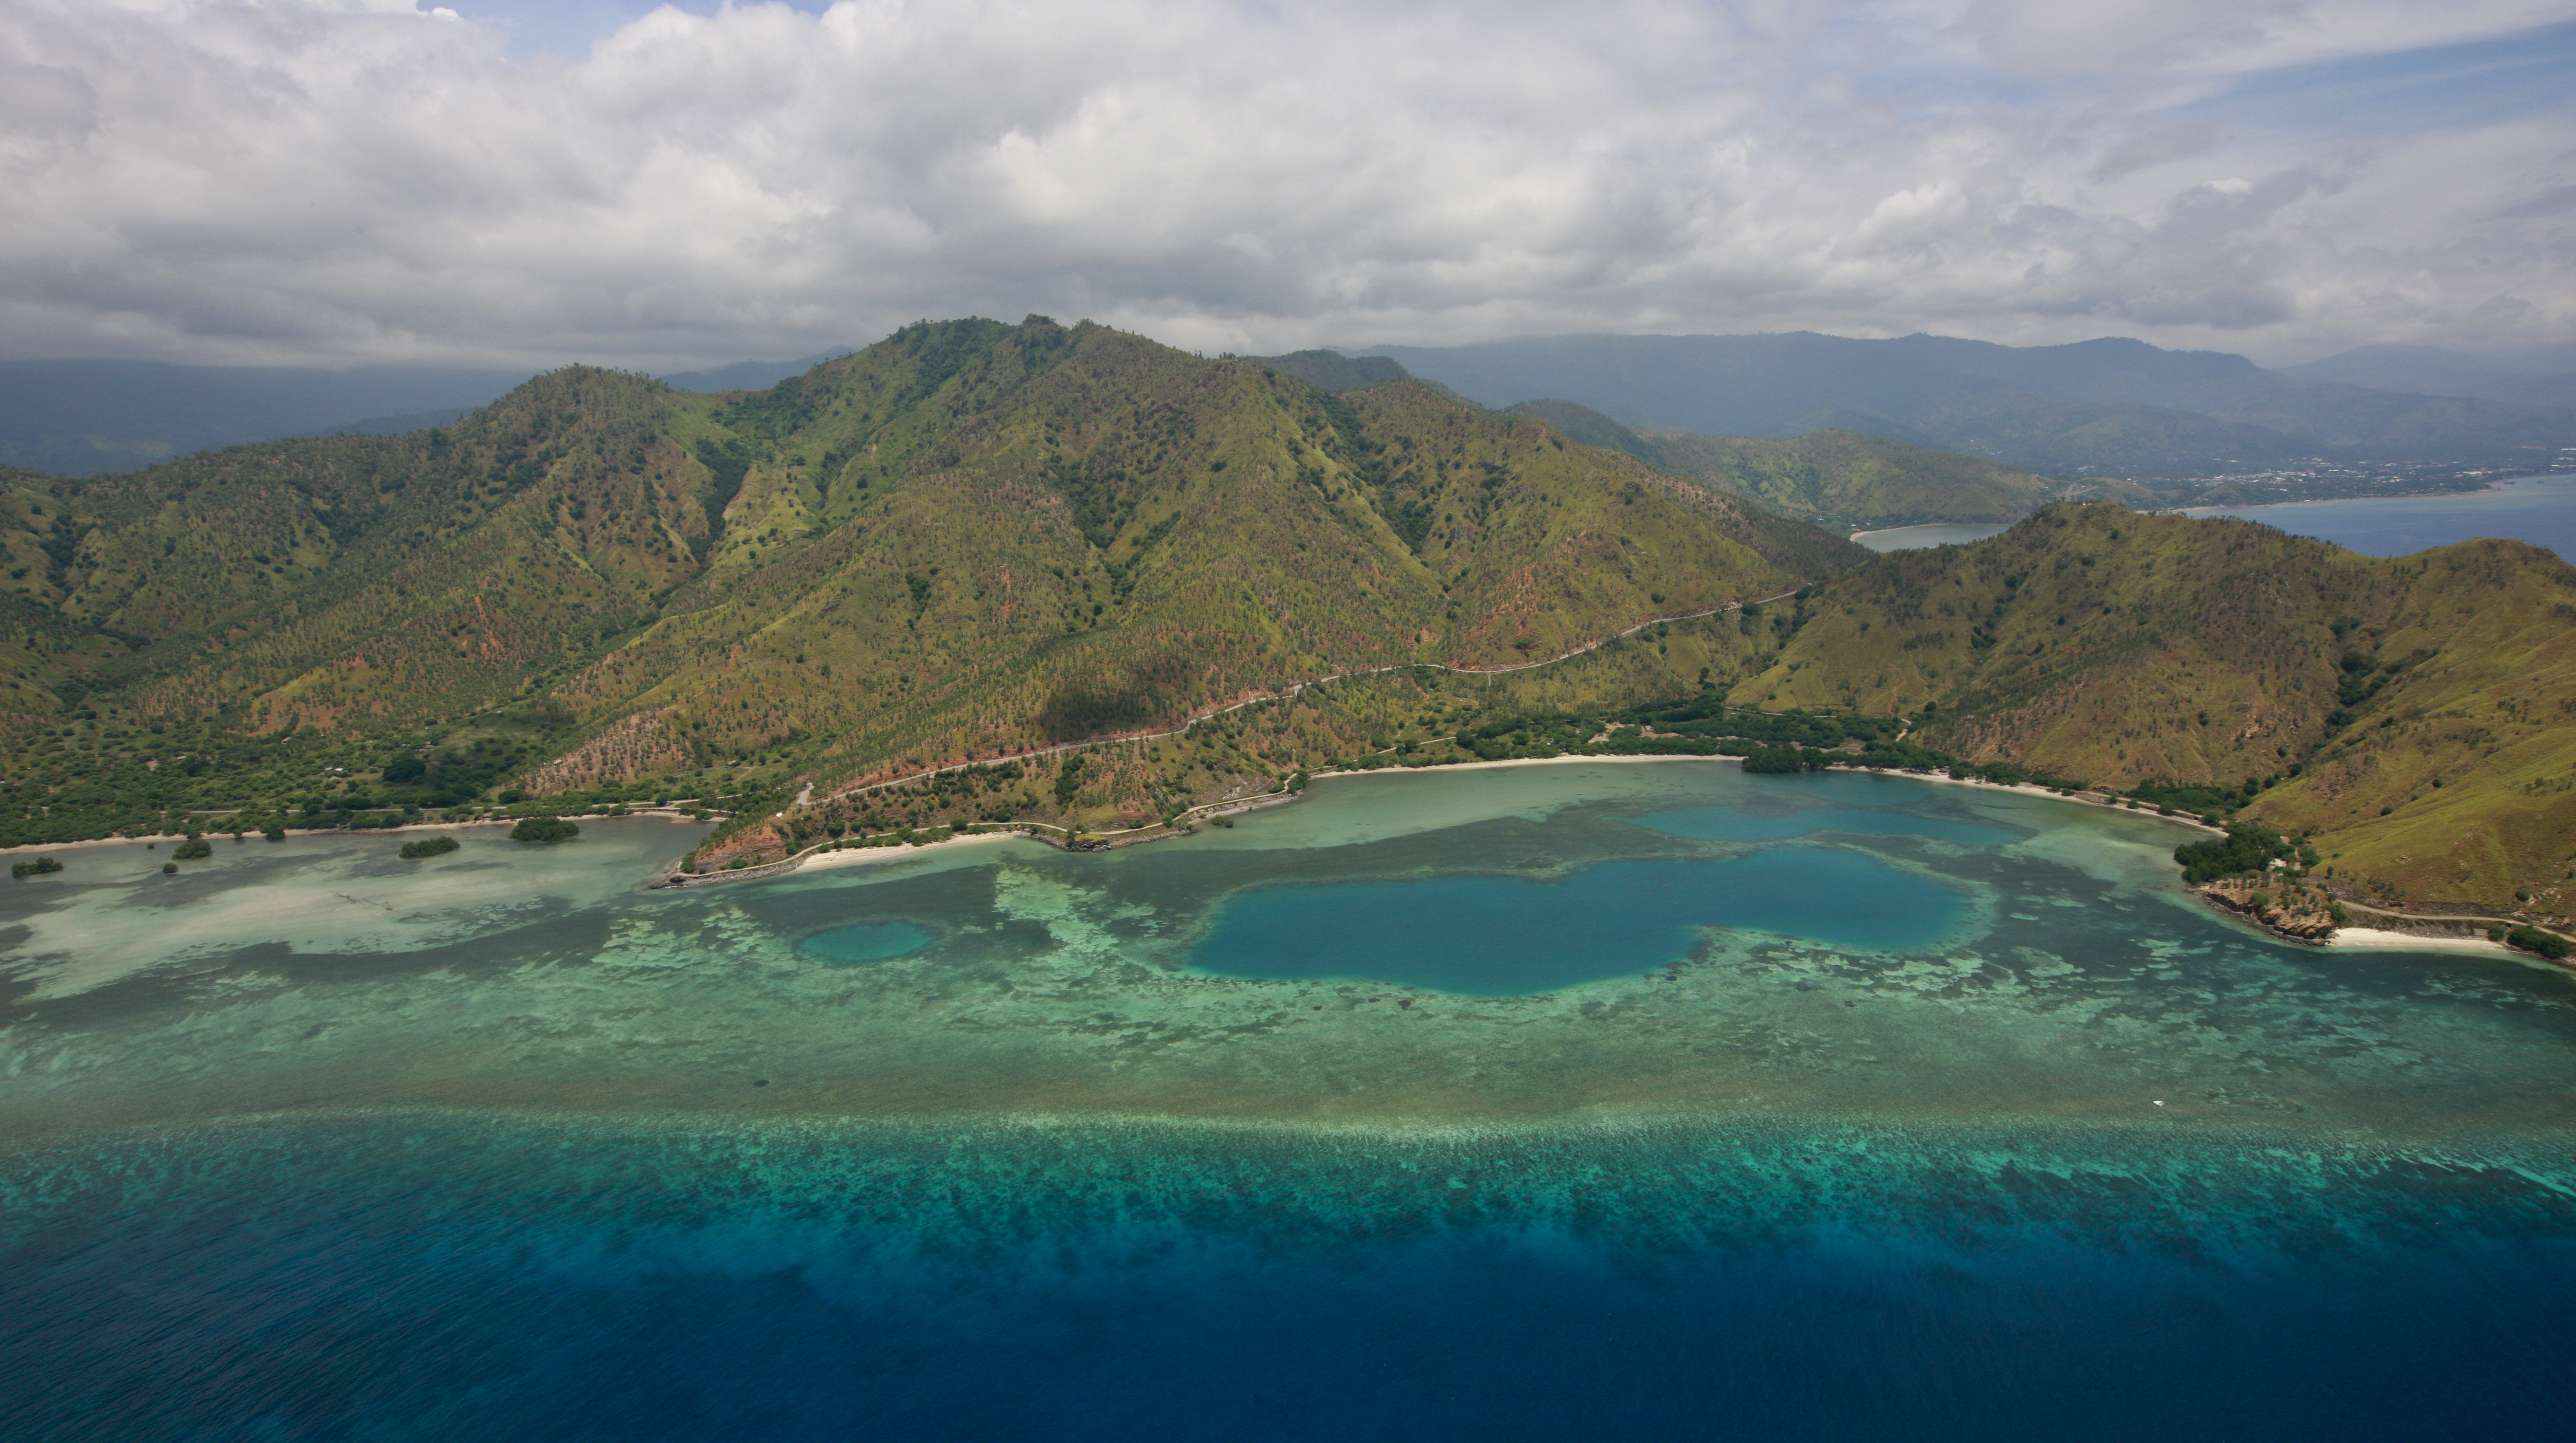 Aerial View near Dili, Timor-Leste | Flickr - Photo Sharing!